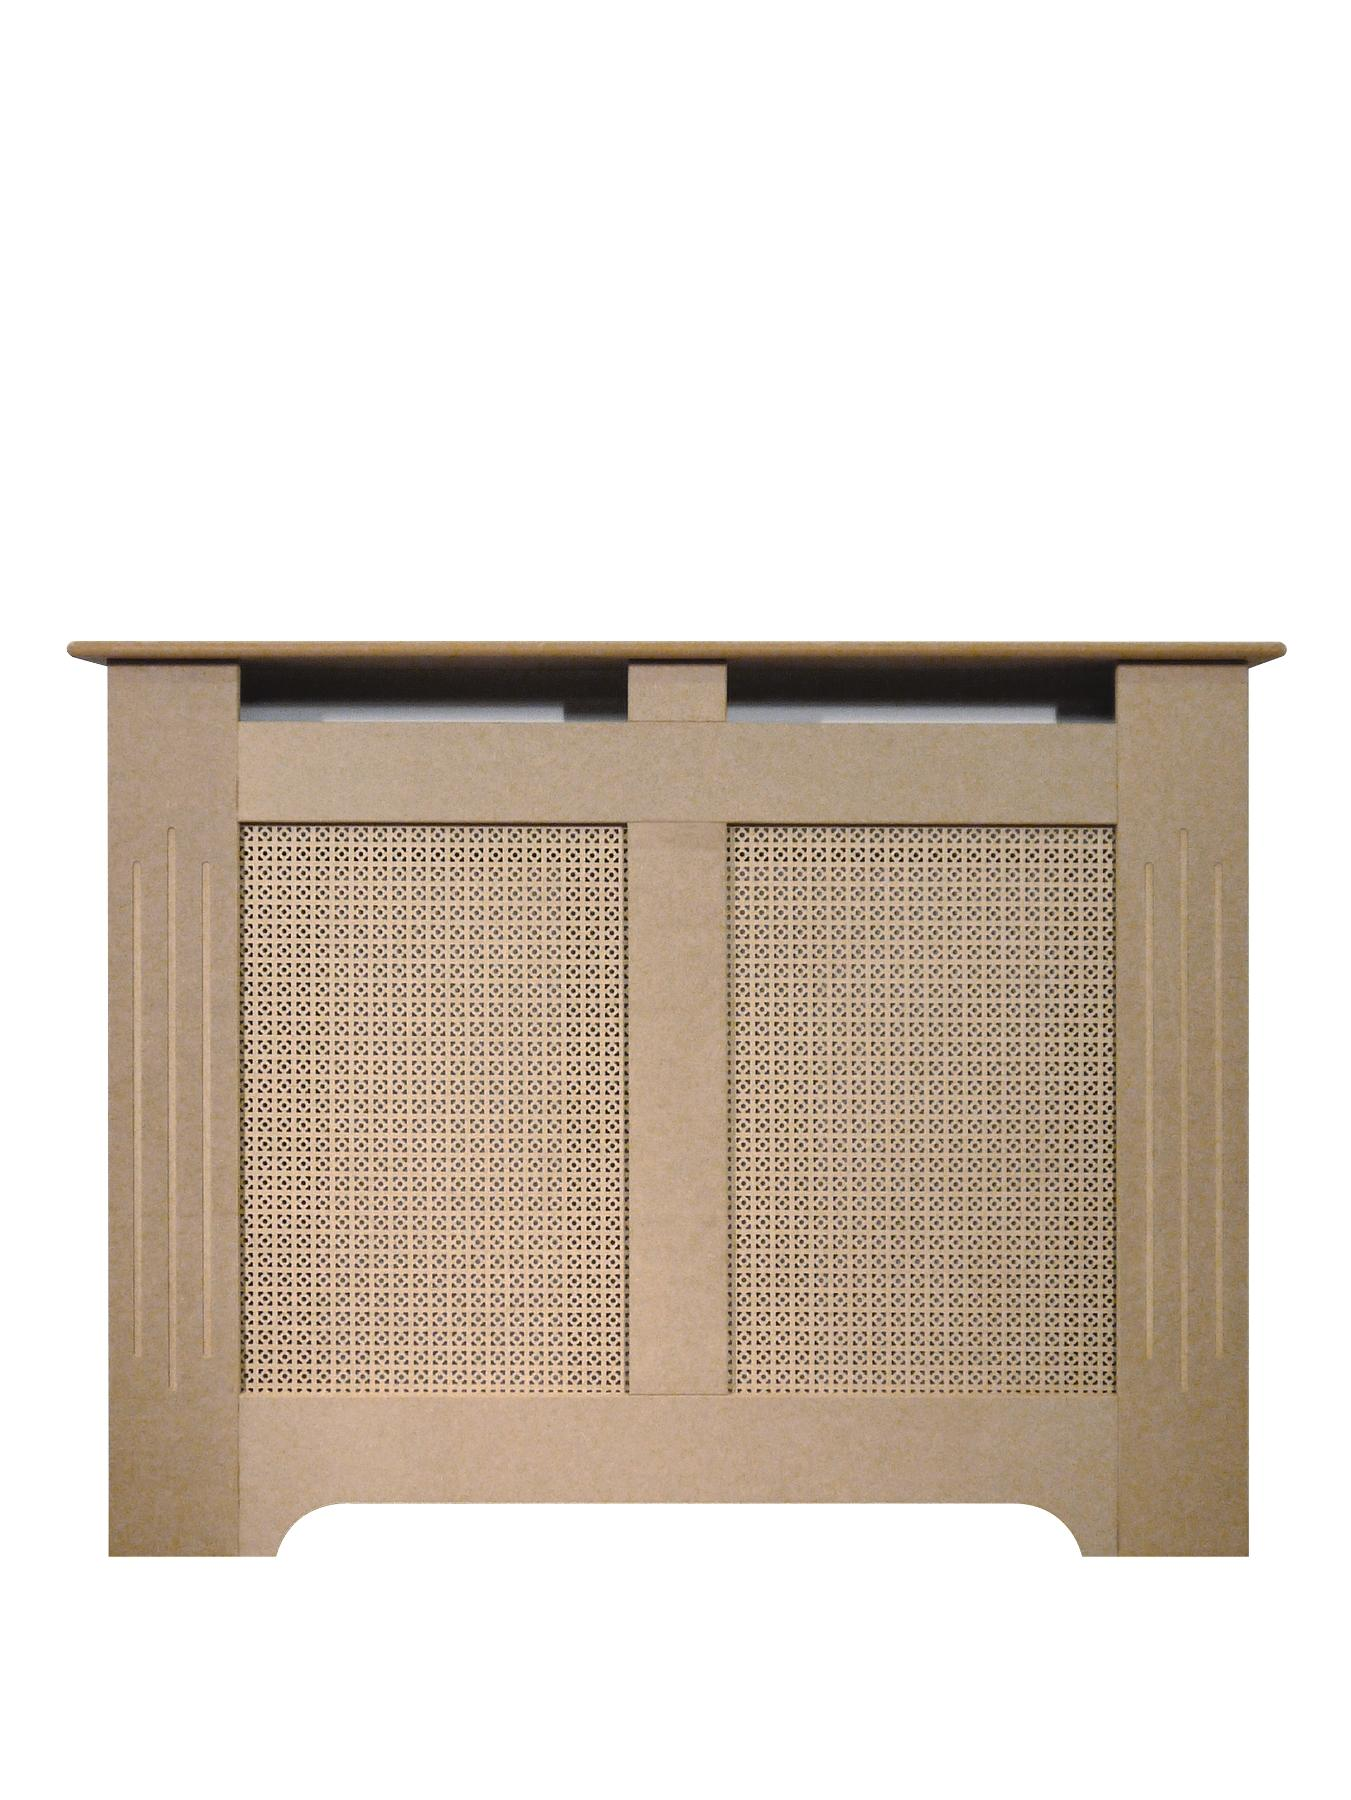 120cm Unfinished MDF Radiator Cover at Littlewoods Home Shopping